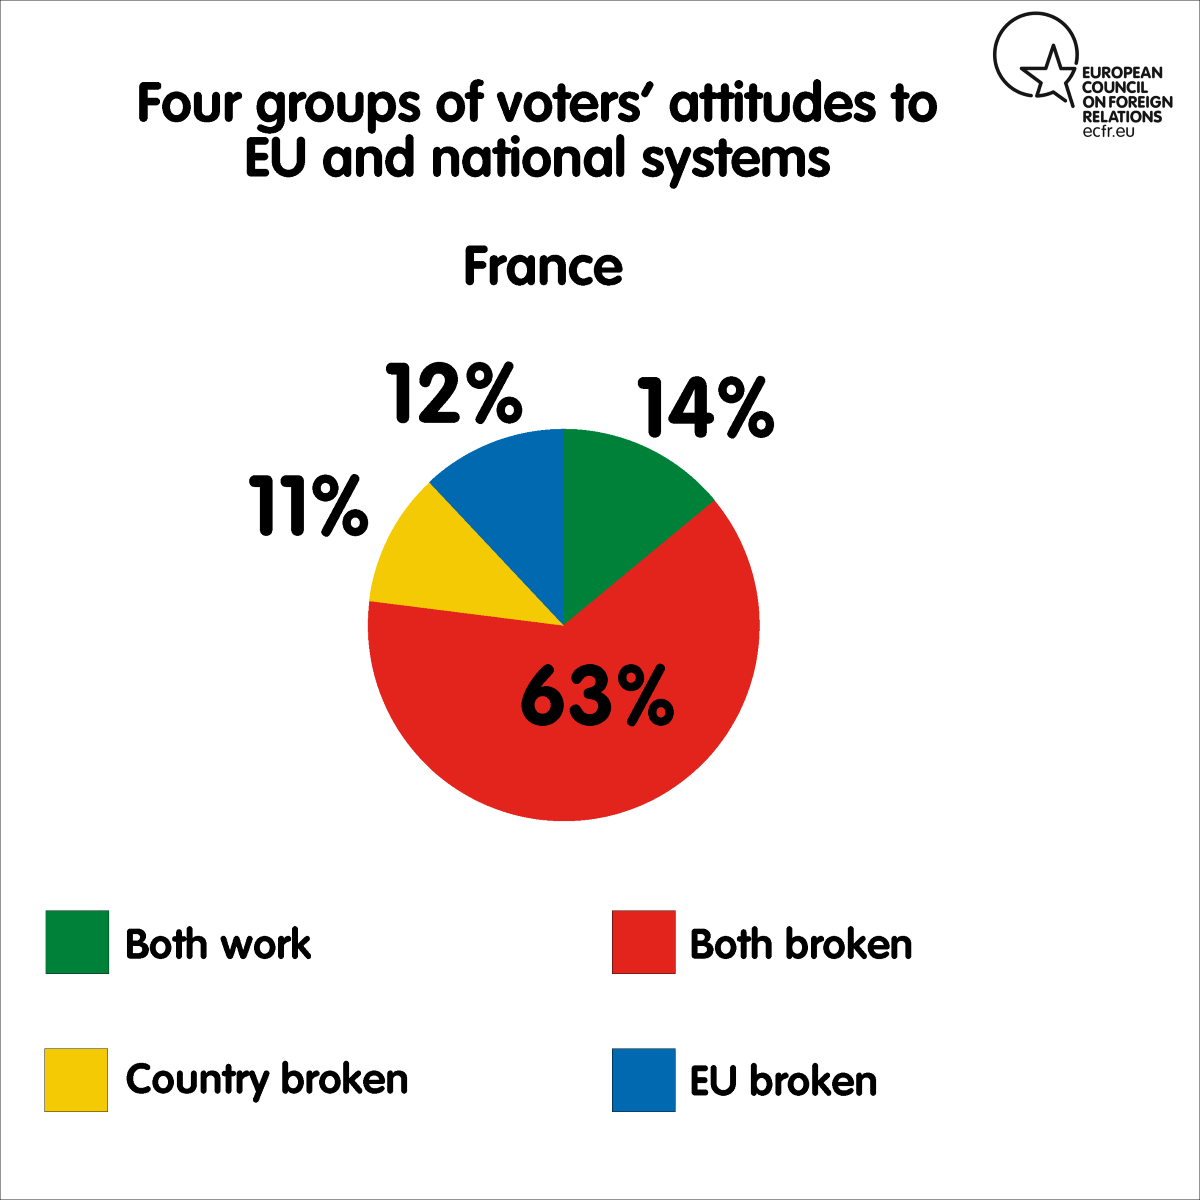 Four groups of voters' attitudes to EU and national systems in France